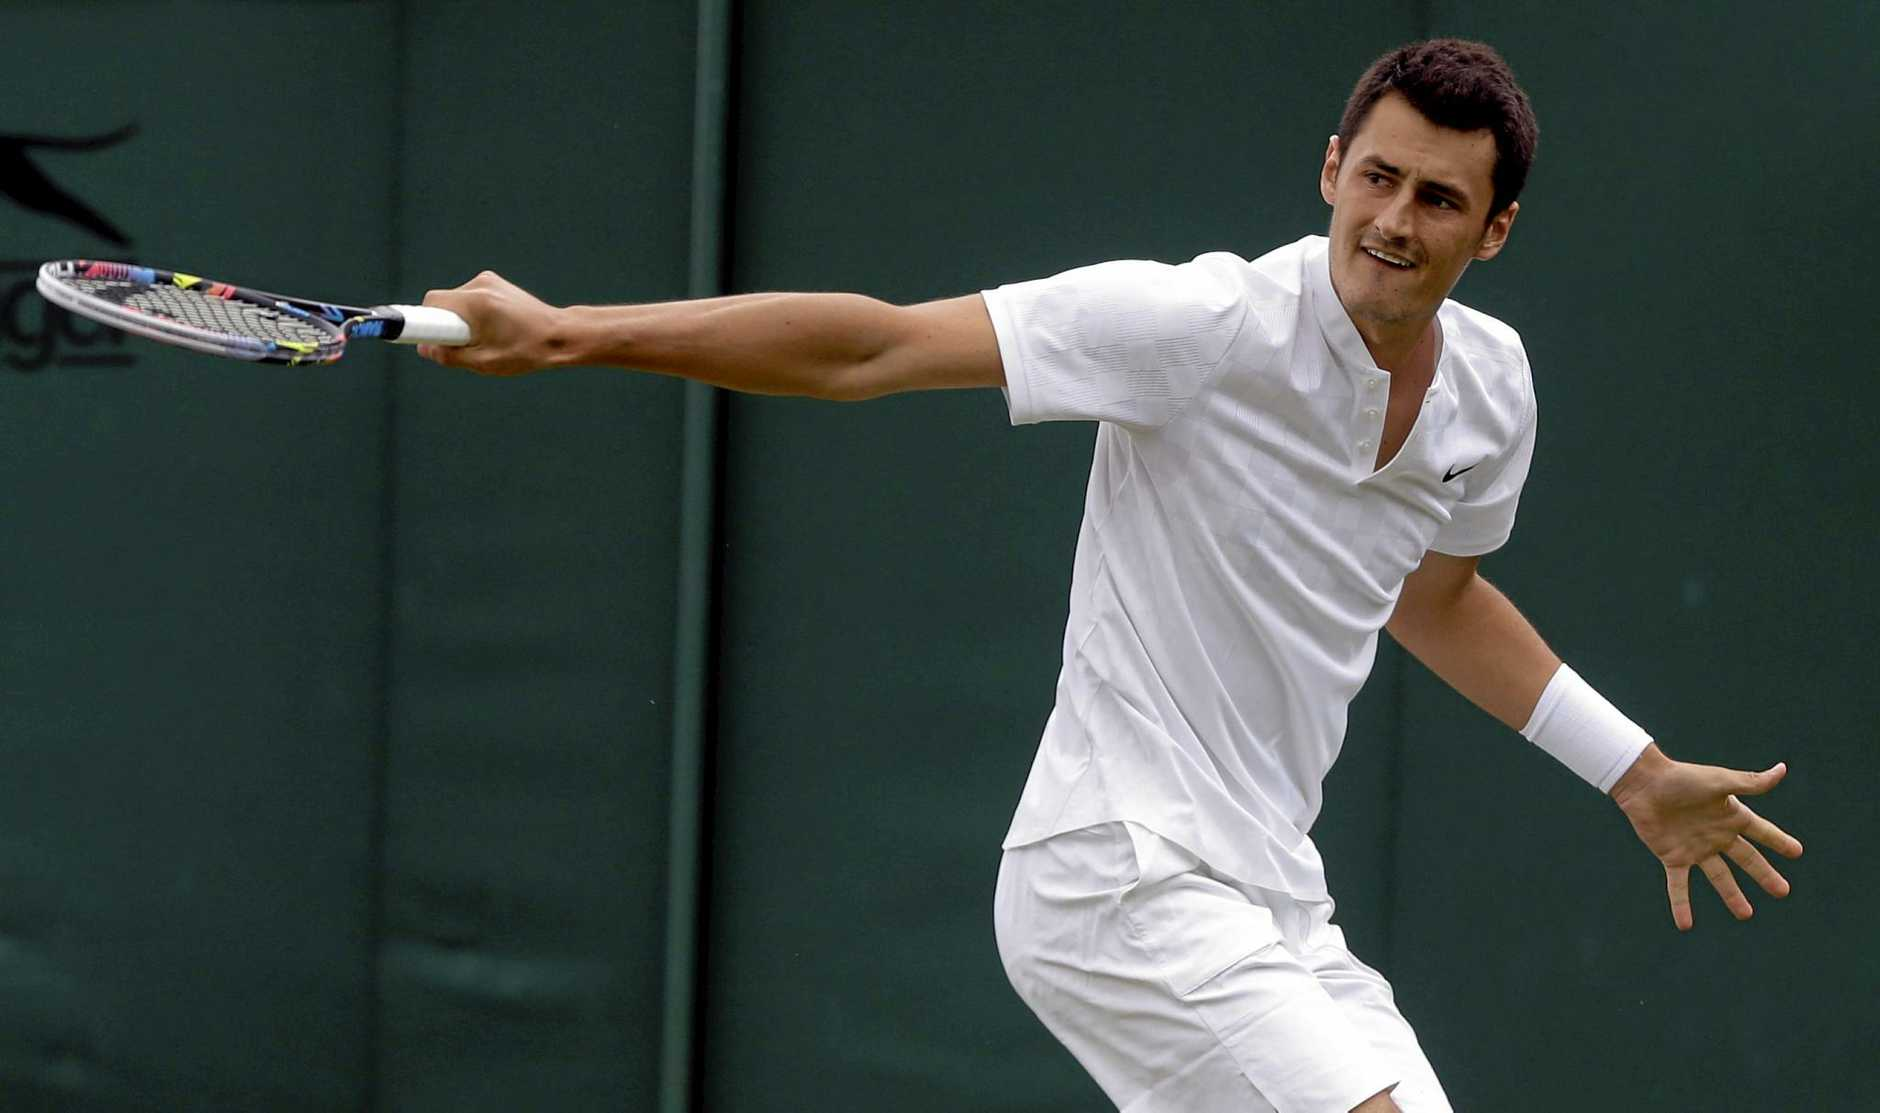 TROUBLED STAR: Australia's Bernard Tomic returns to Germany's Mischa Zverev during their Men's Singles Match on day two at the Wimbledon Tennis Championships in London.